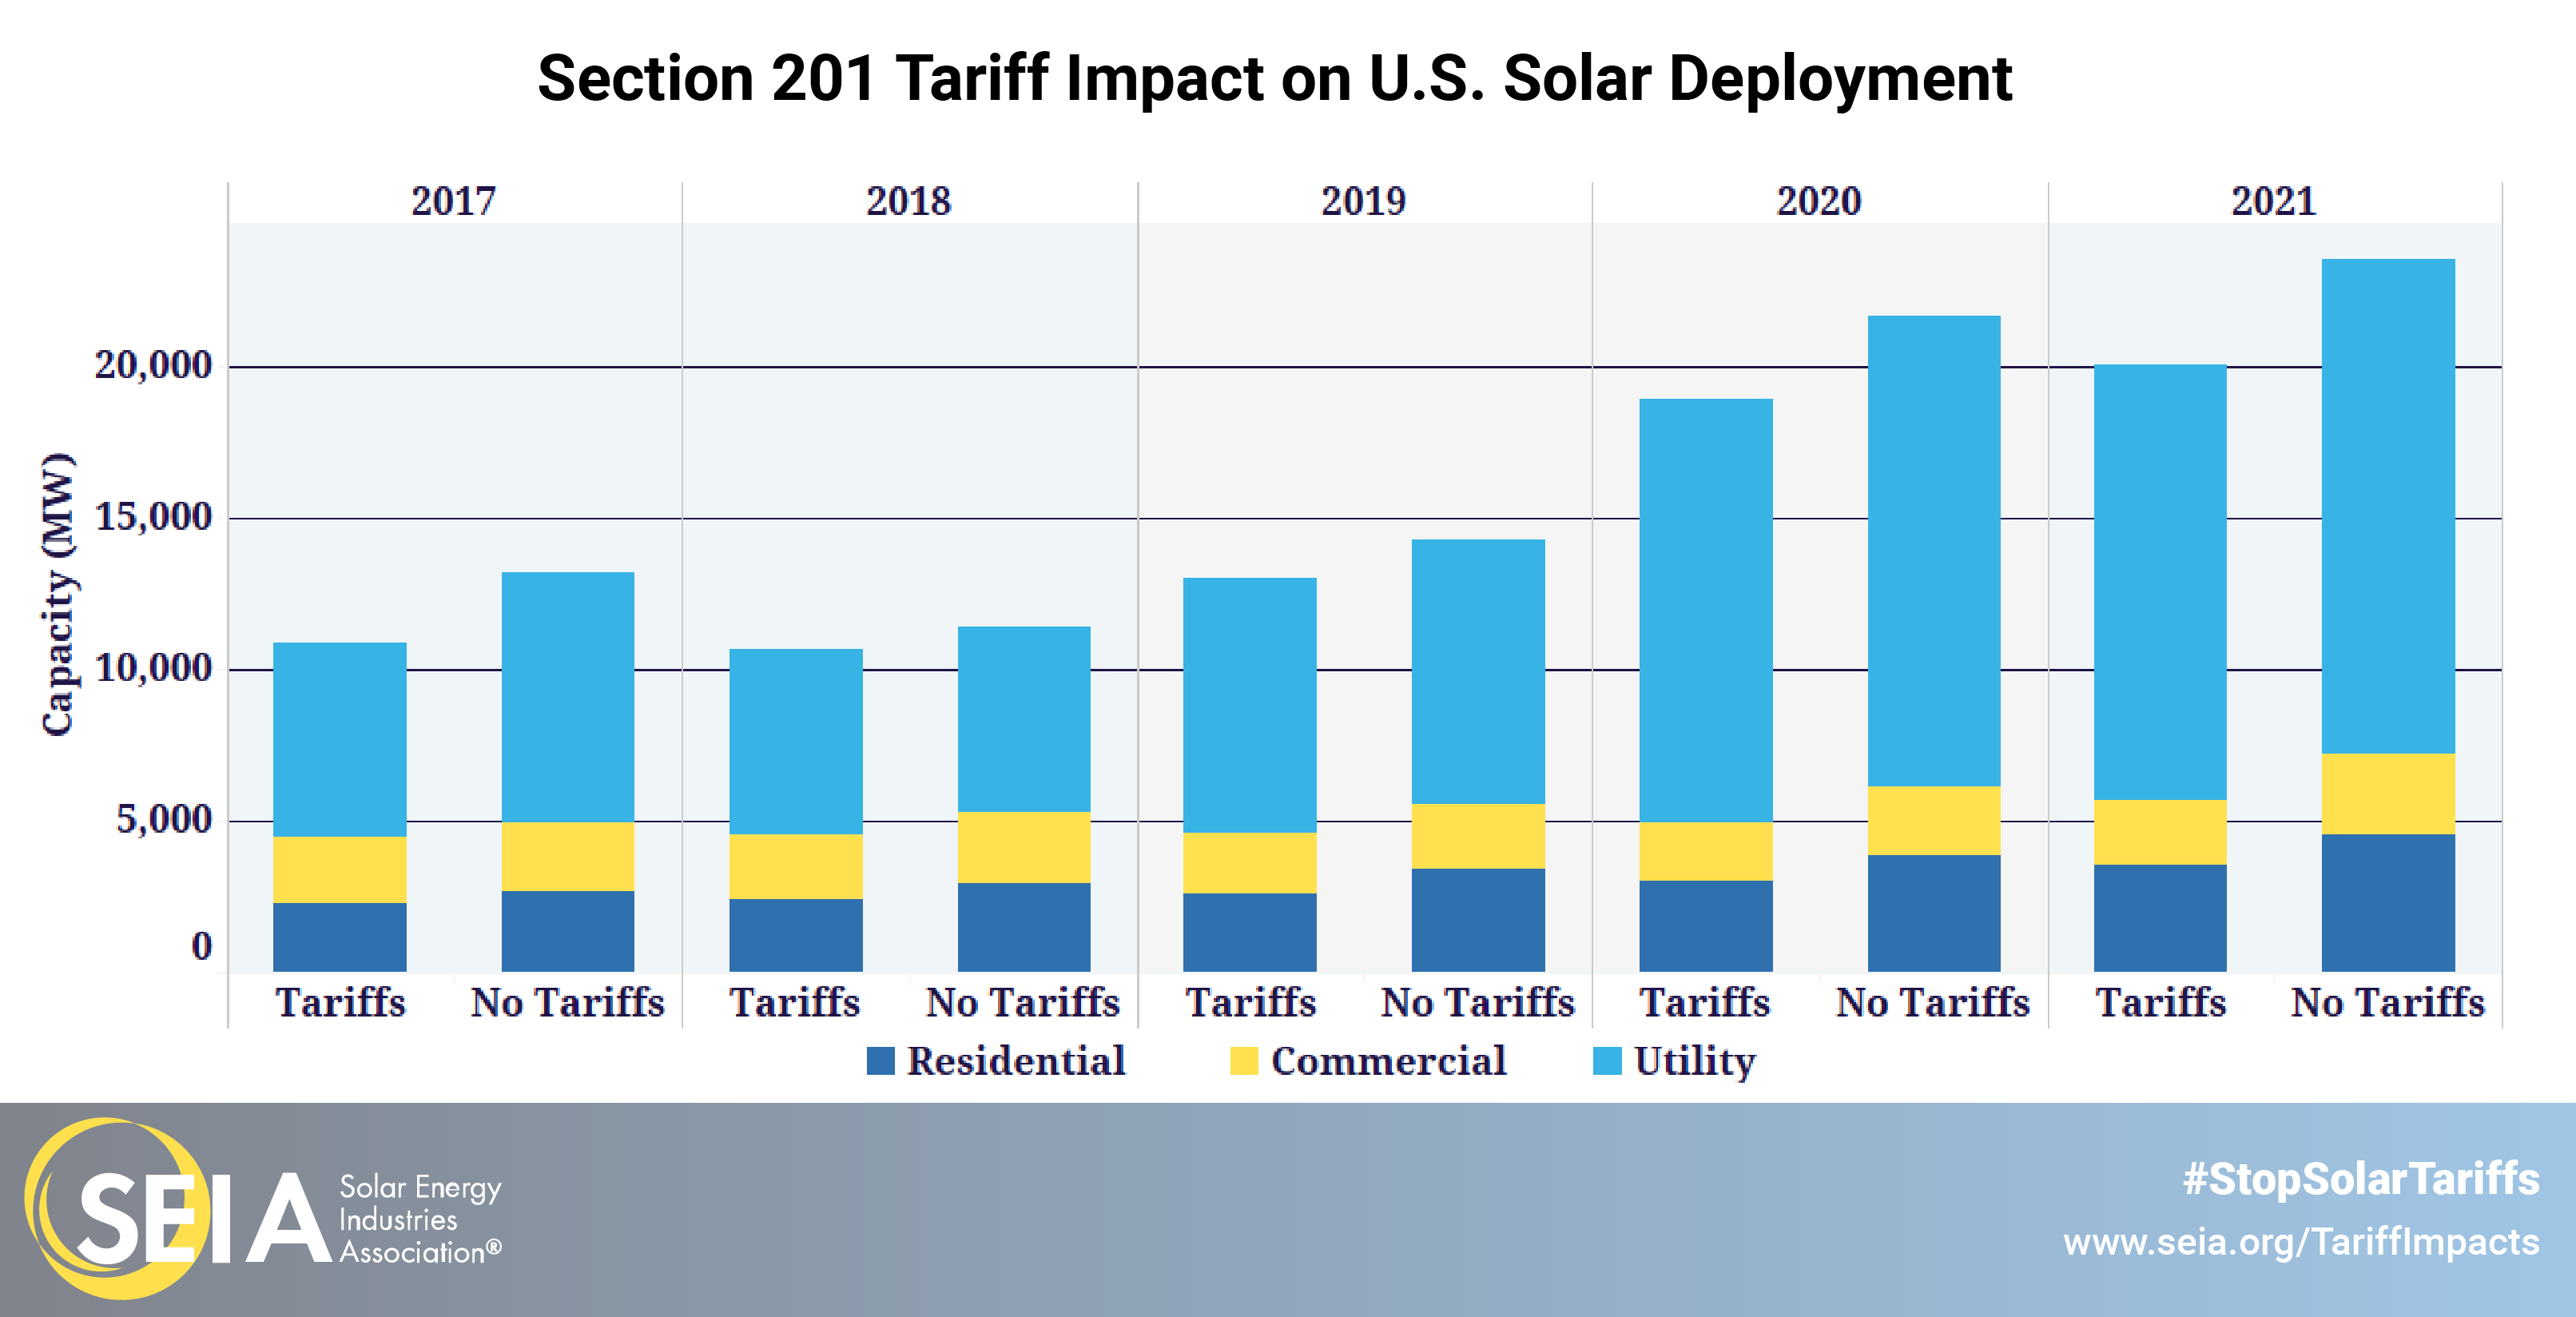 section 201 tariffs impact on u.s. solar deployment